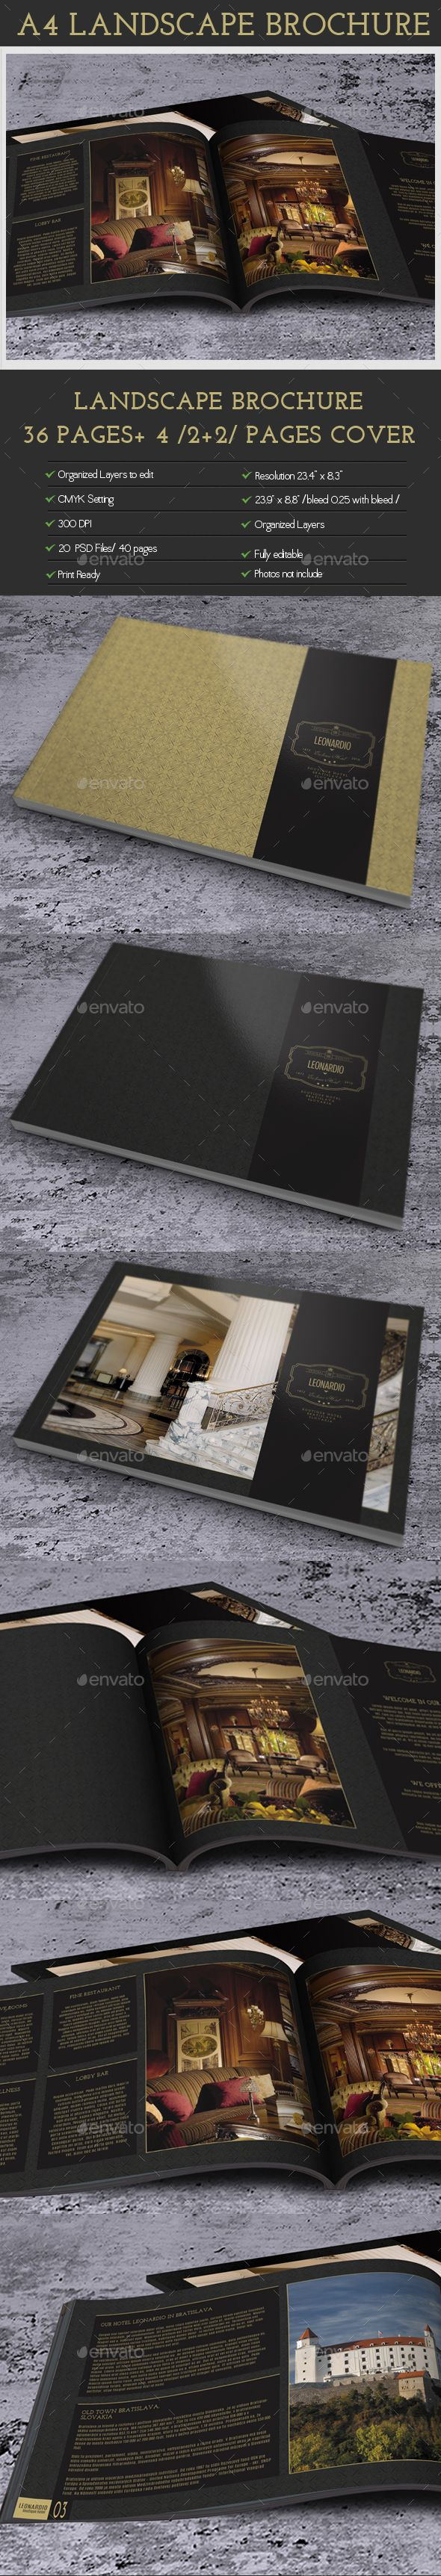 Pin by sundus khalid on Letterhead design | Page template